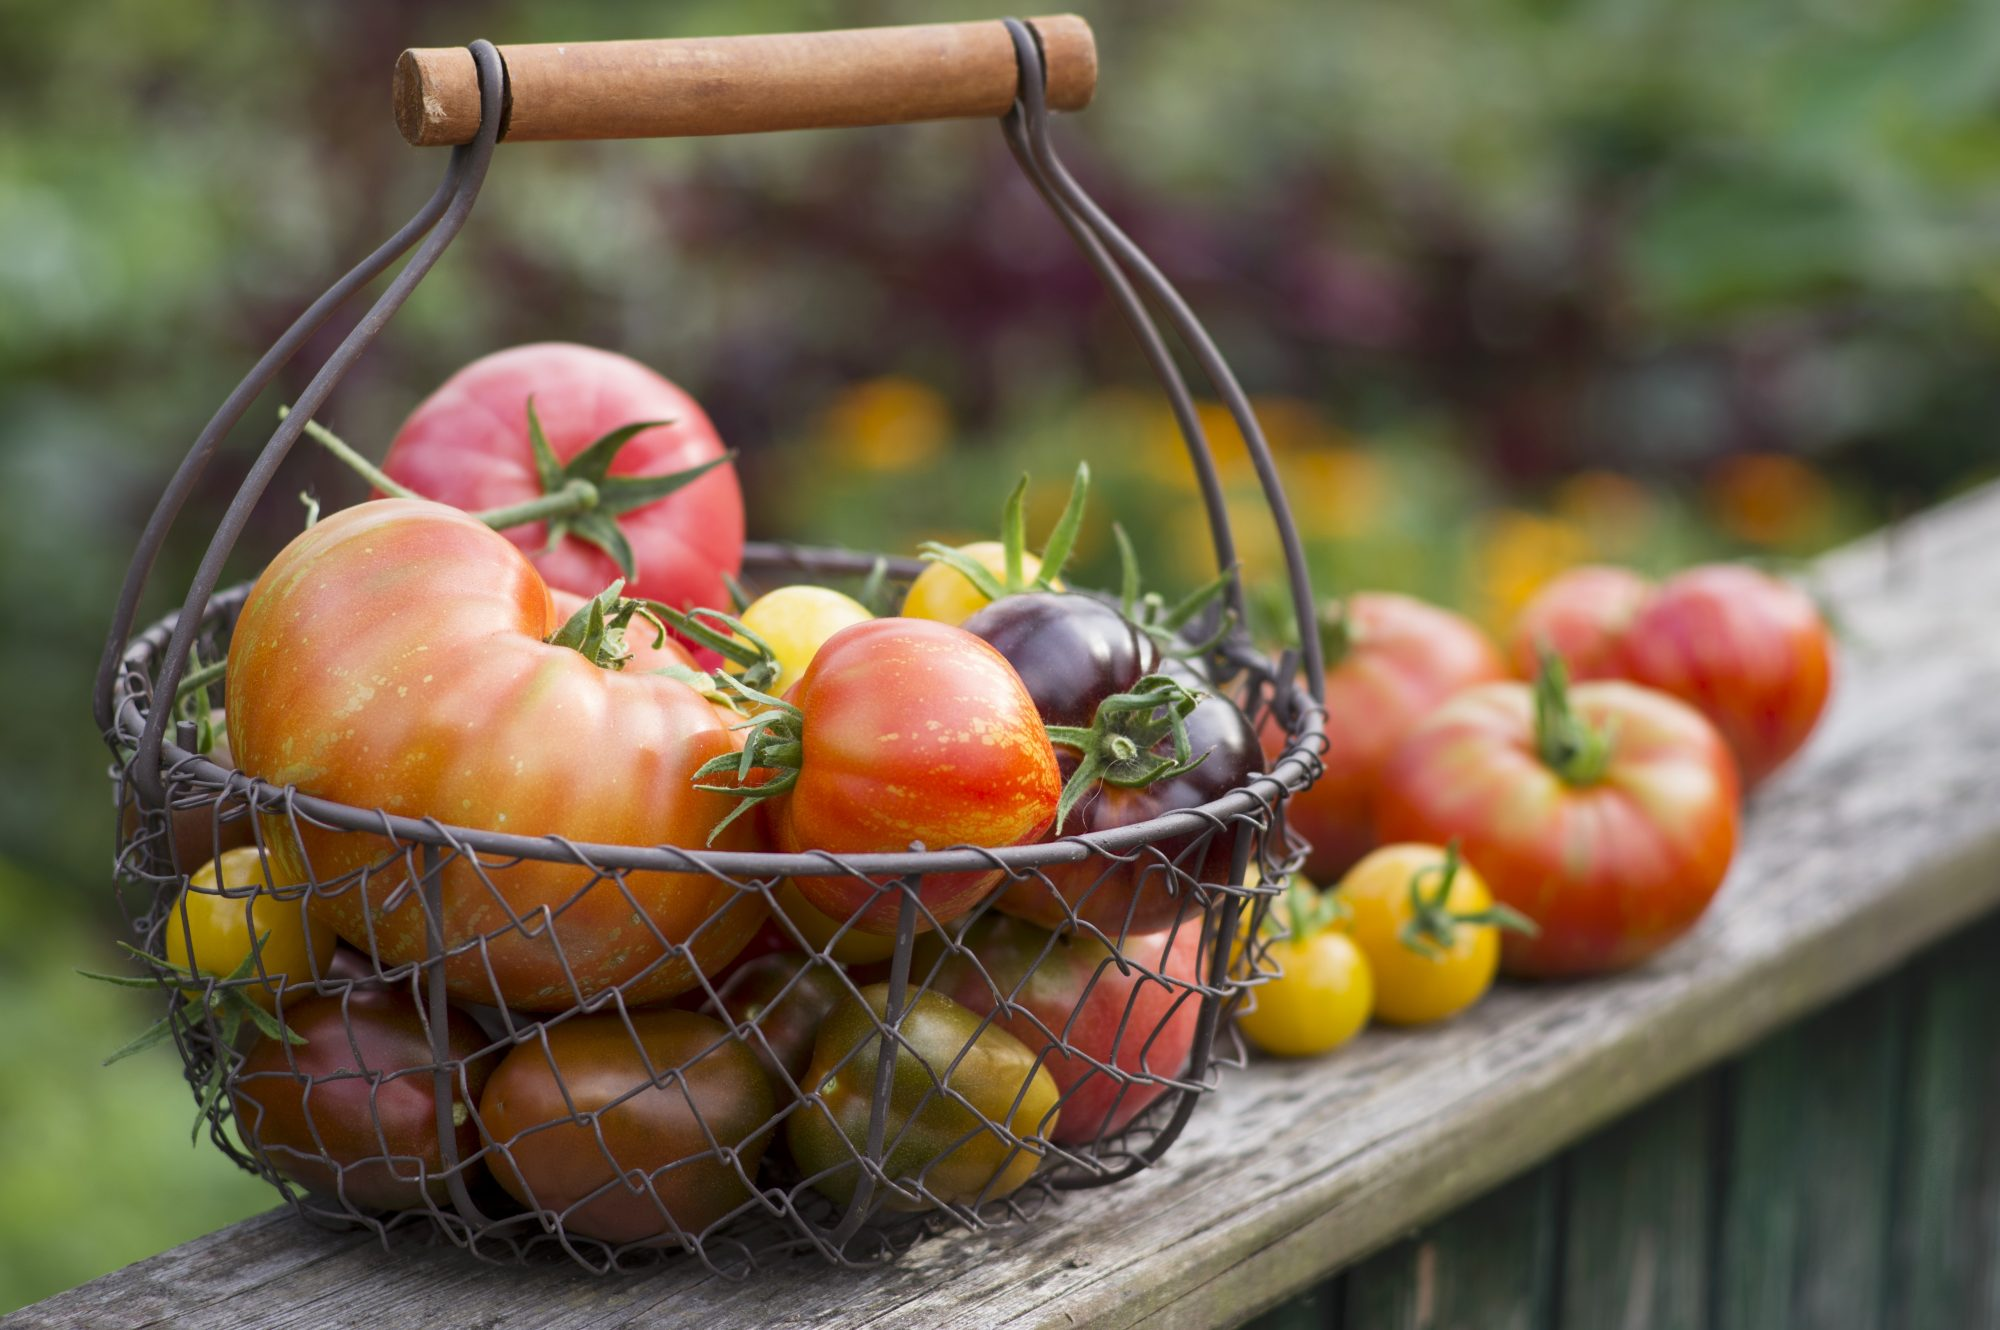 getty heirloom tomato image